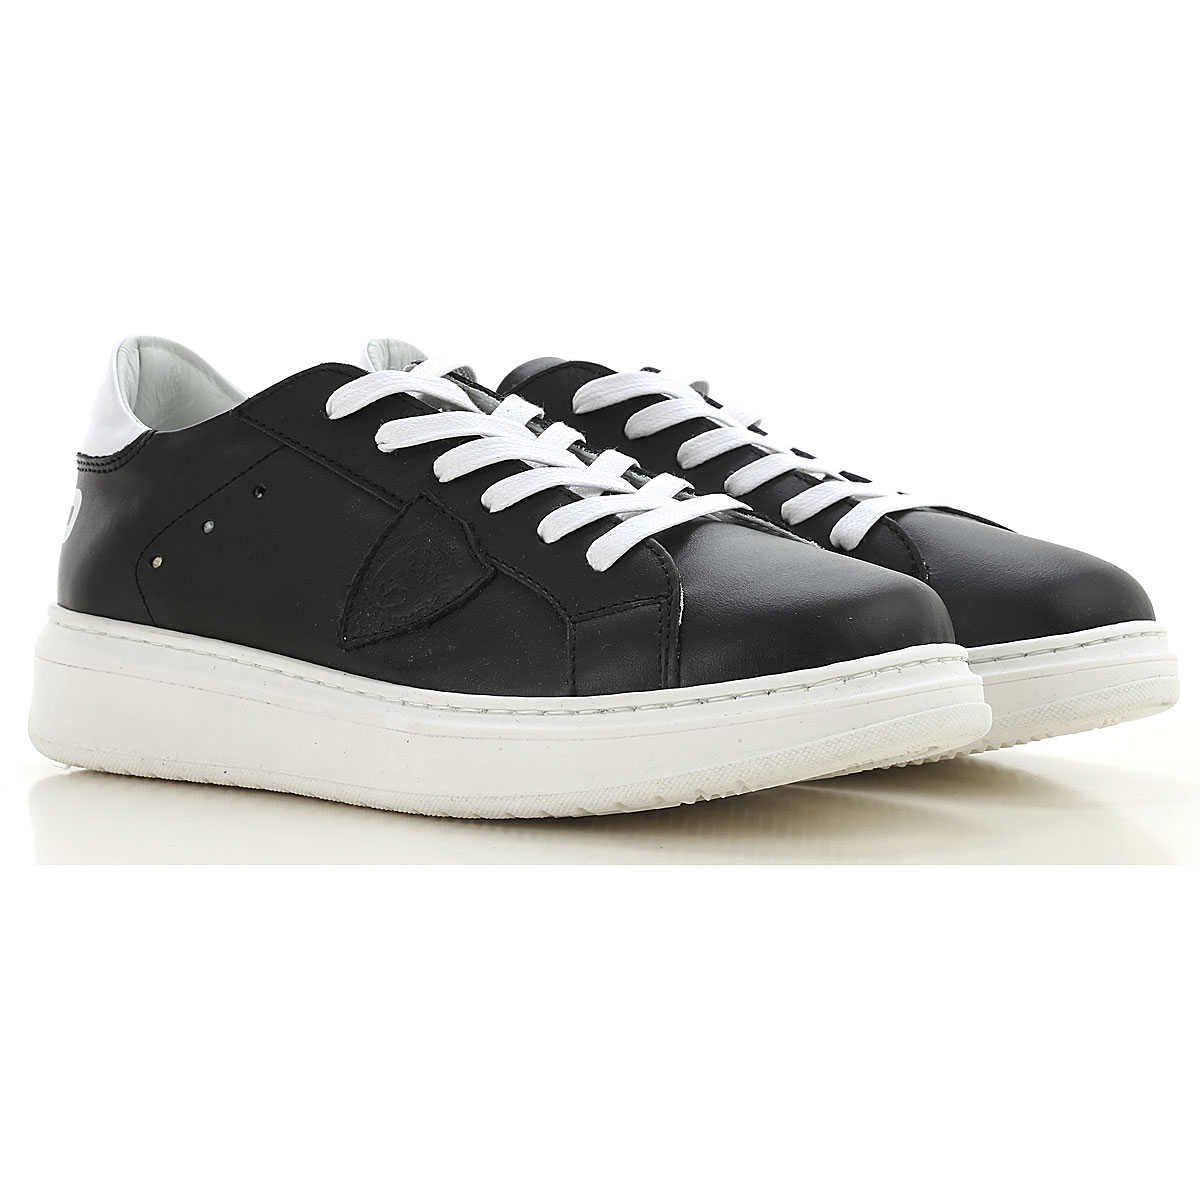 Philippe Model Kids Shoes for Boys Black Canada - GOOFASH -